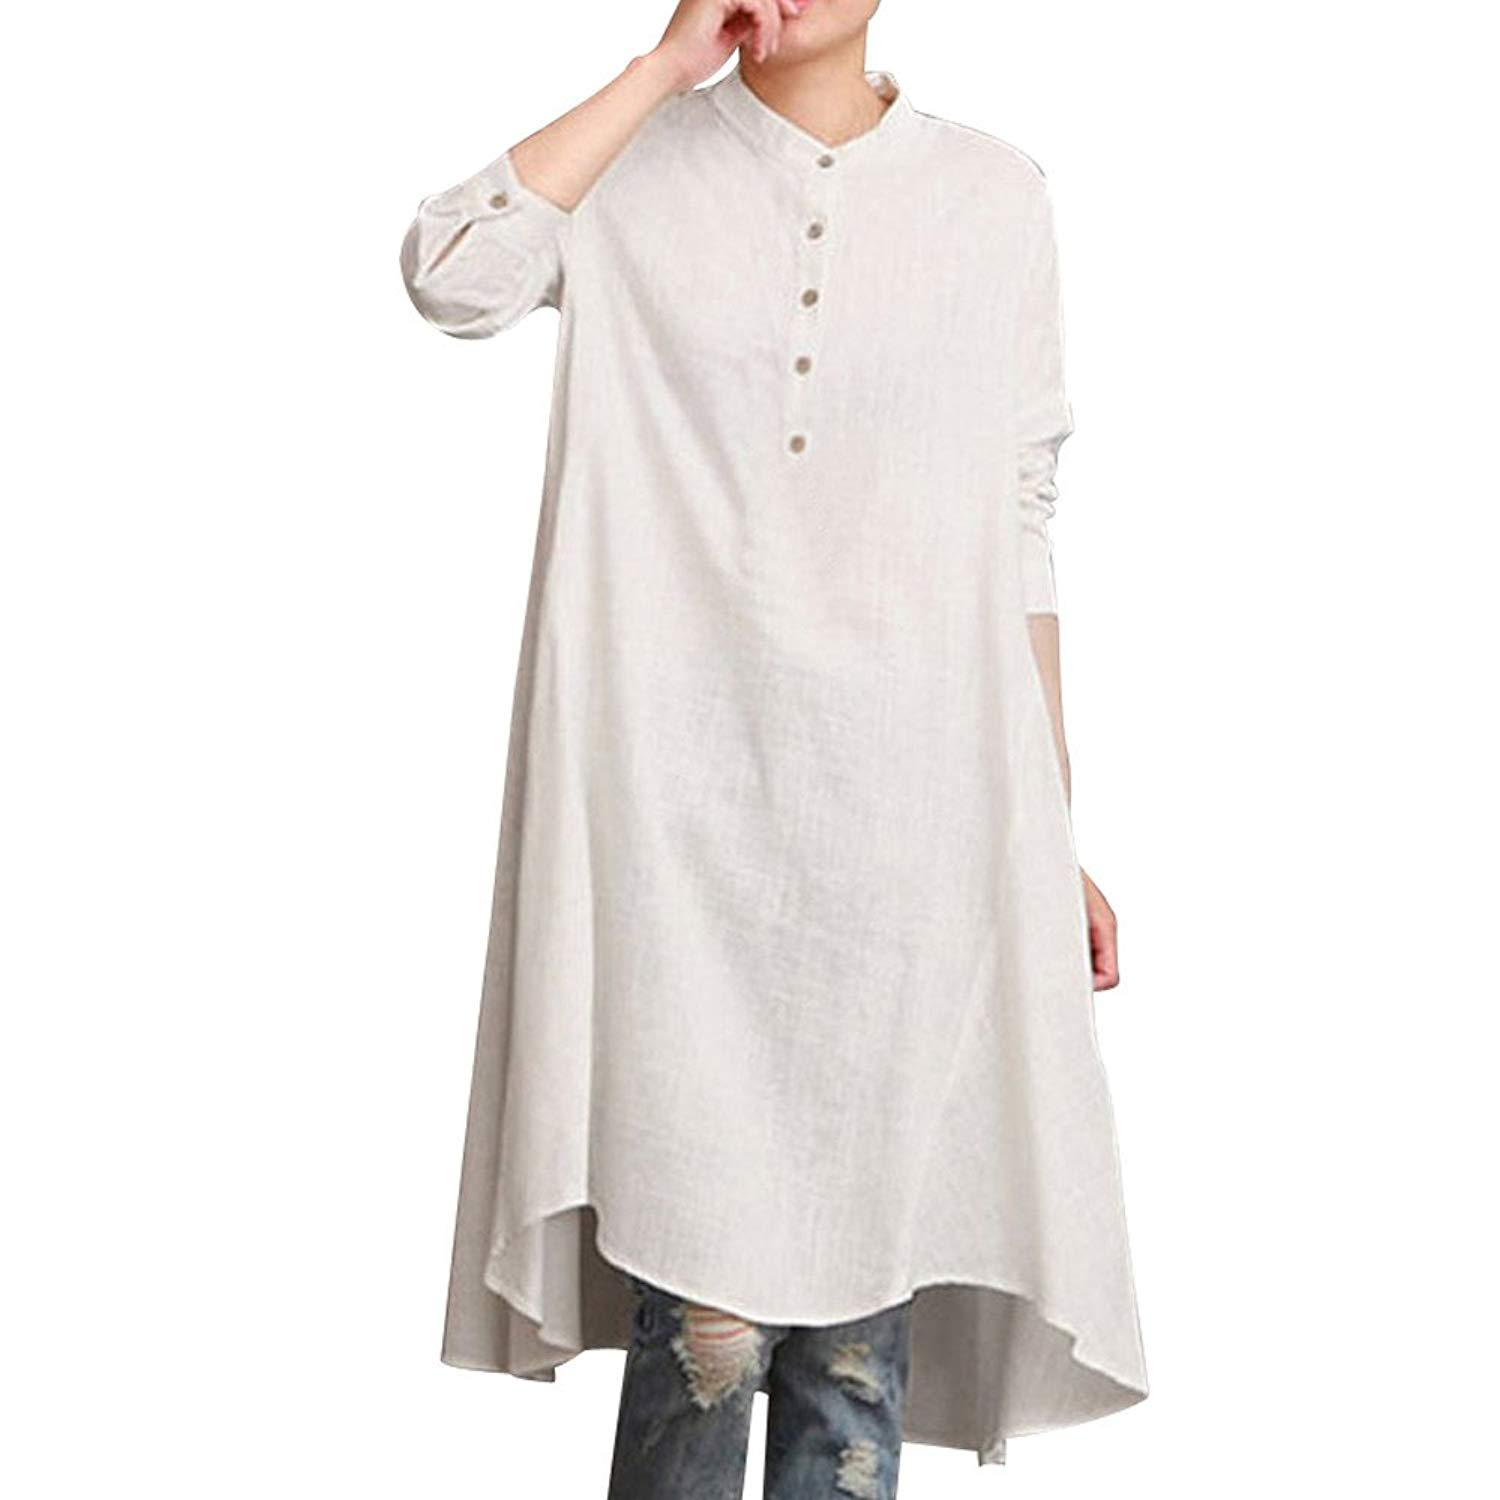 56462e04f8c Get Quotations · WEUIE Women Tops Clearance Sale Womens Kaftan Cotton Linen  Long Sleeve Loose Blouse Tops Shirt Baggy